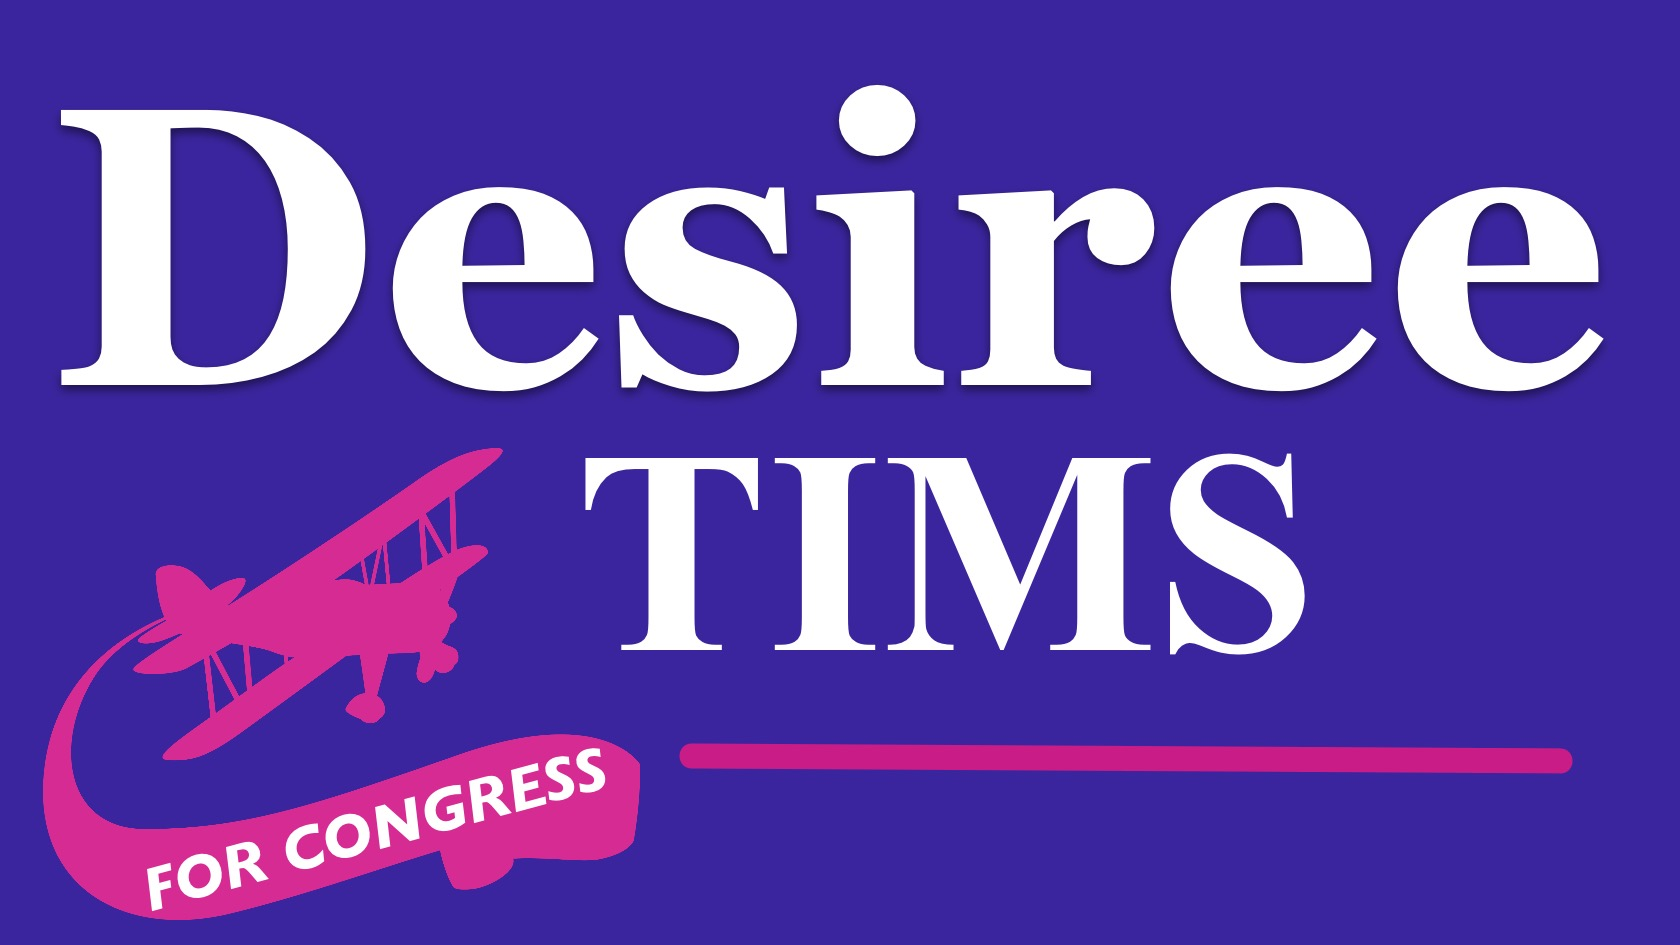 Desiree Tims for Congress